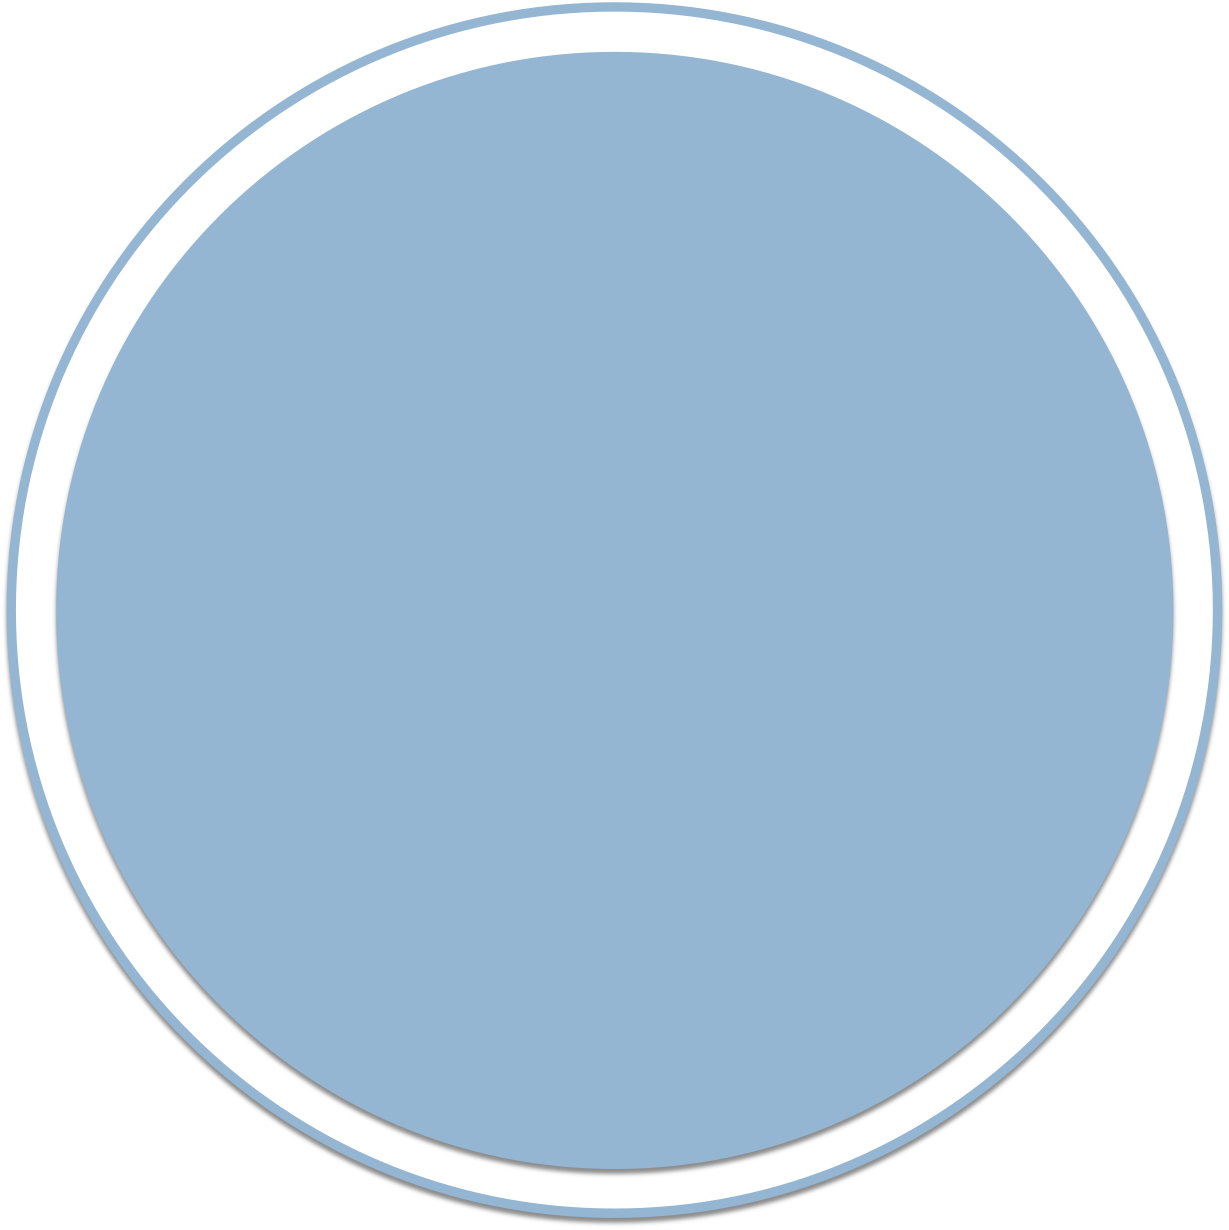 Blue circle png. At getdrawings com free